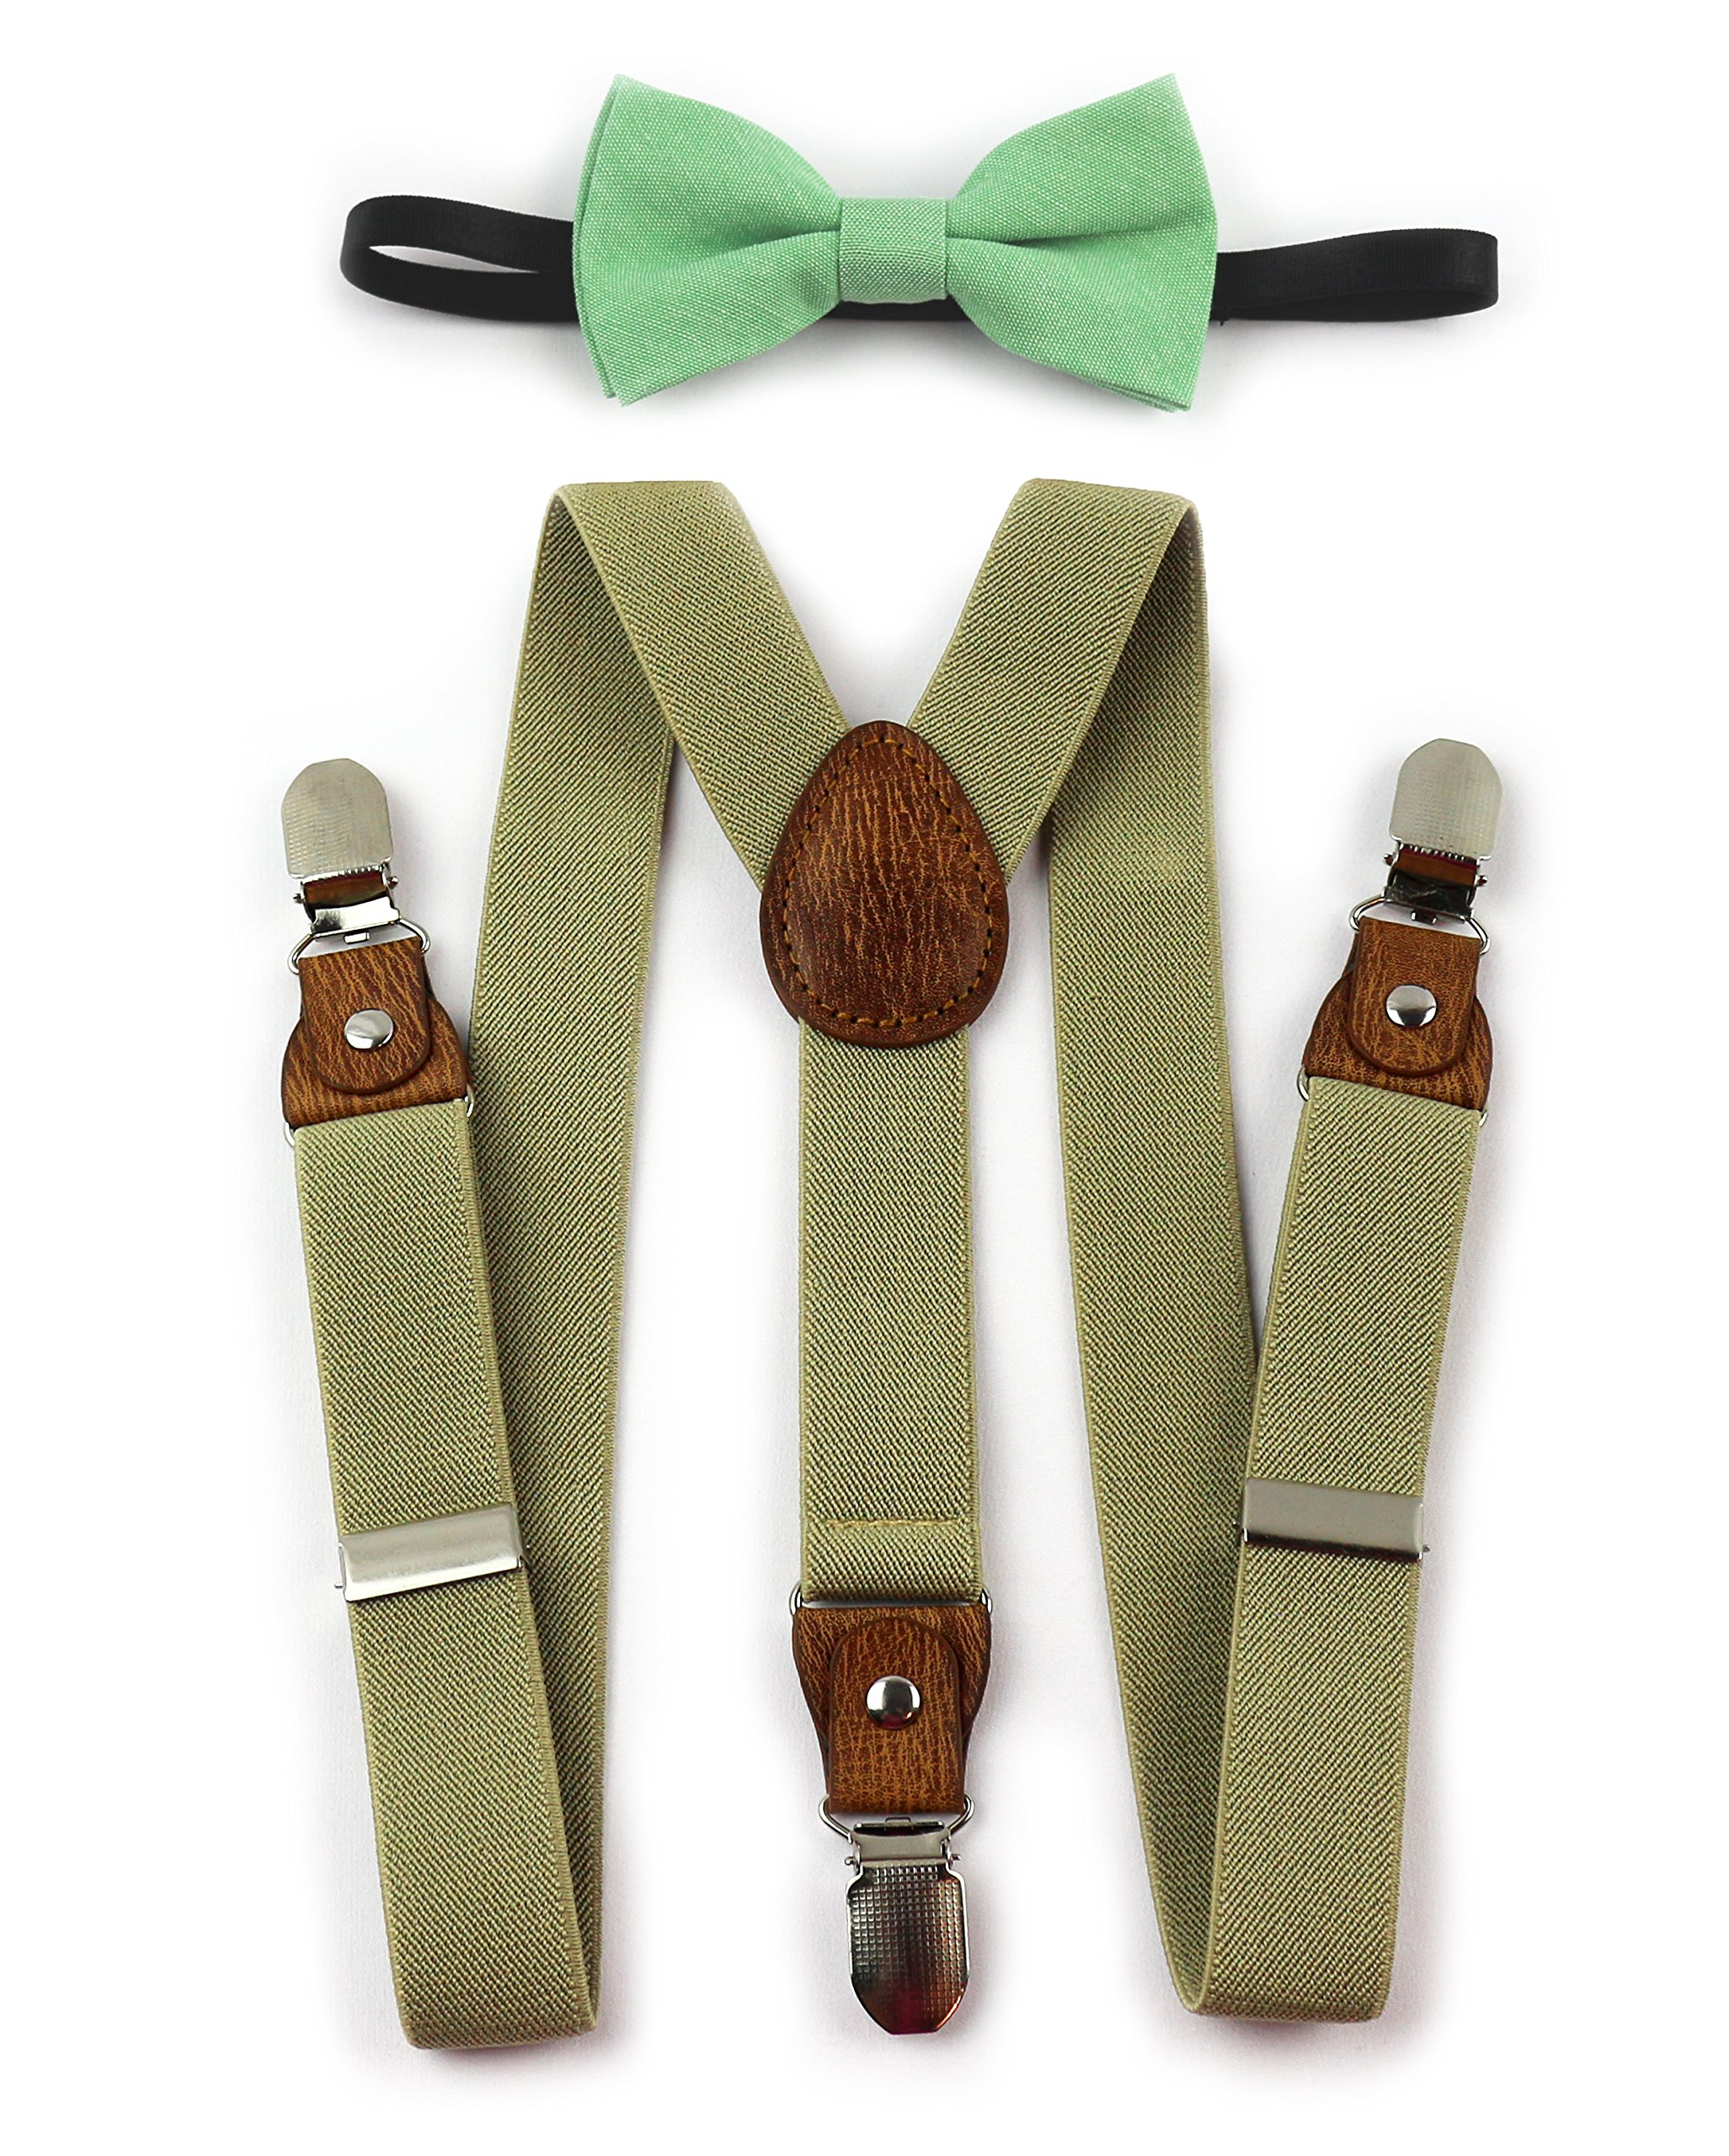 Kids Suspenders Bow Tie (Tan Khaki Suspenders and Mint Green Bow)